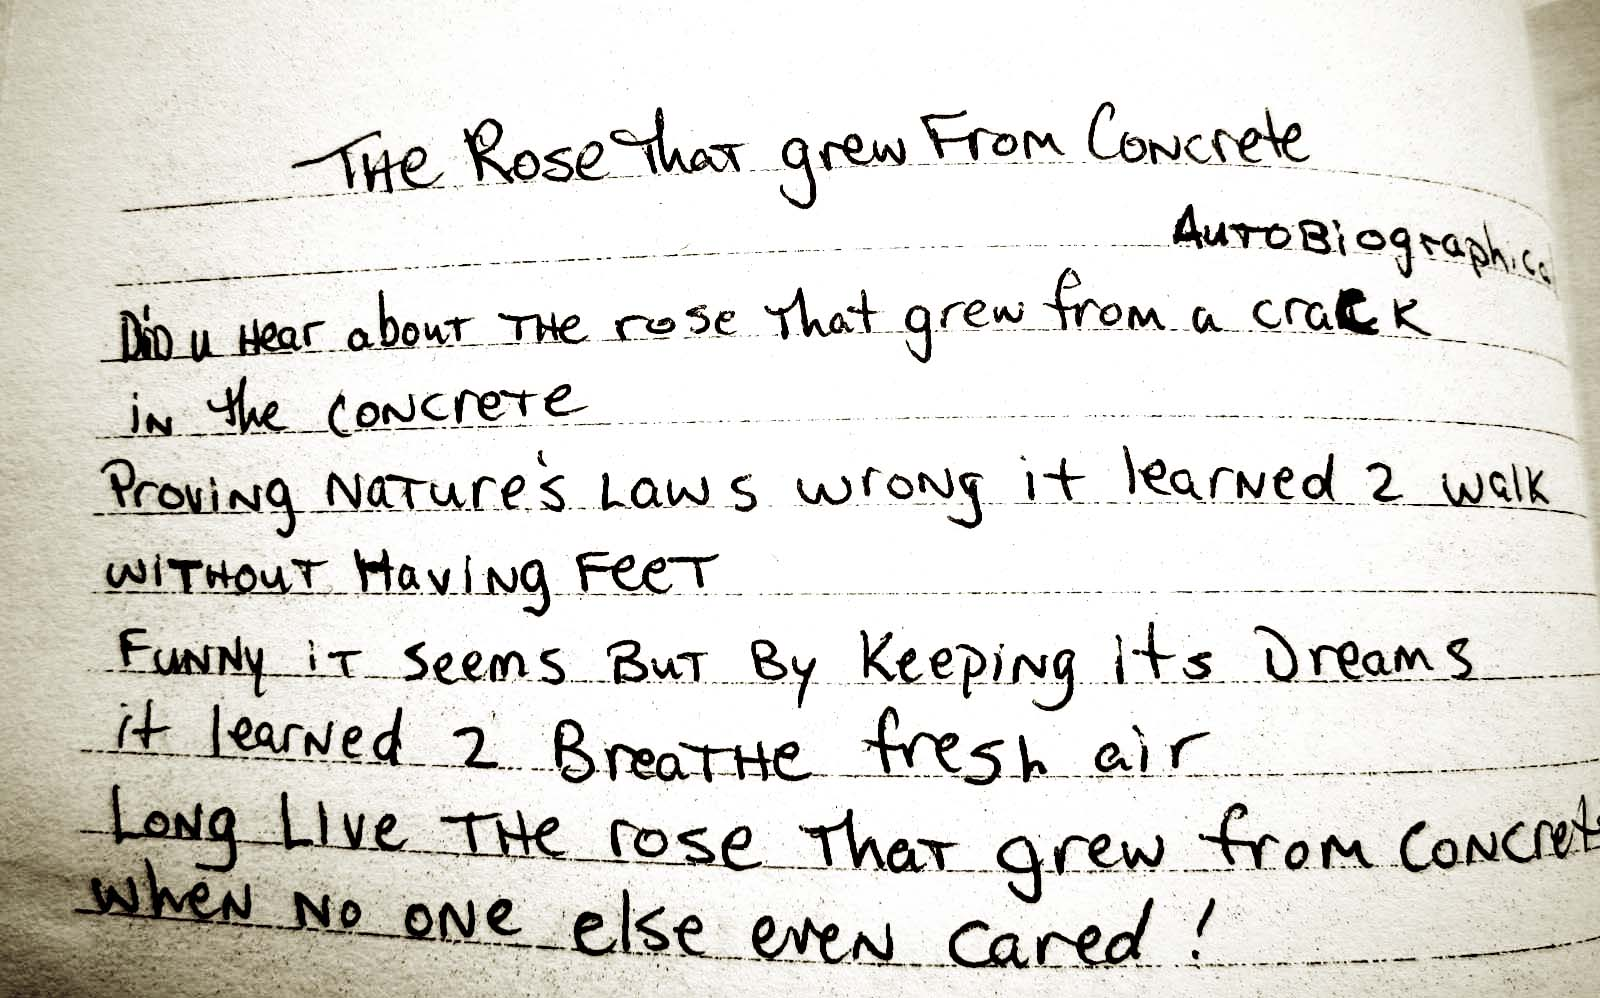 Book Amp Acuppa The Rose The Grew From Concrete